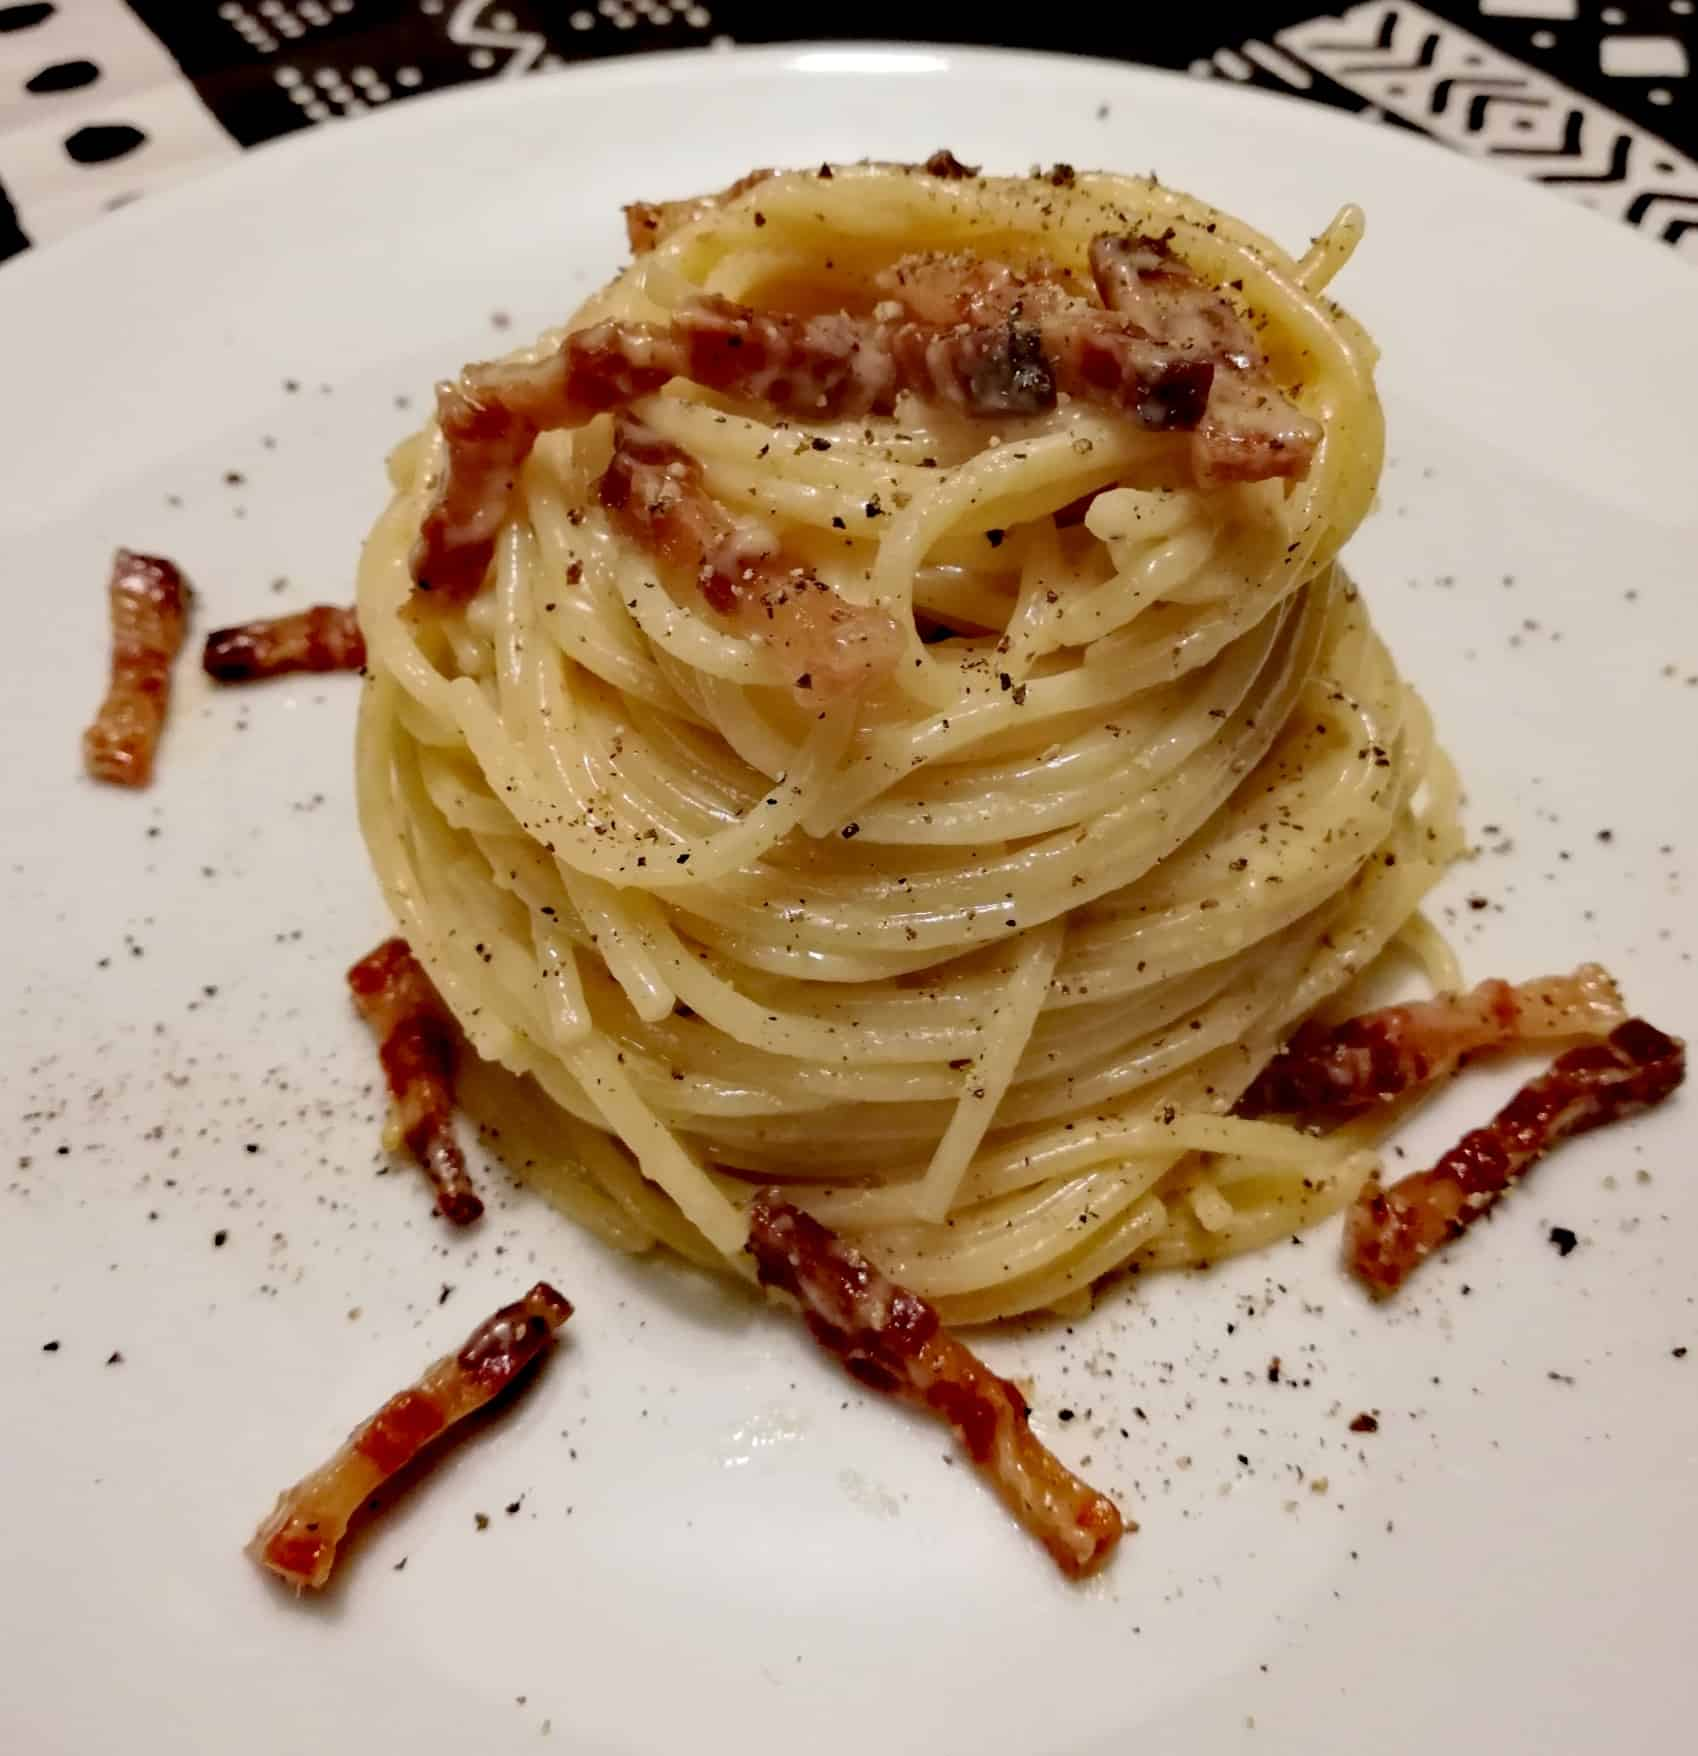 Top 10 Most Delicious Italian Foods   This is Italy   Page 5  Delicious Pasta Carbonara